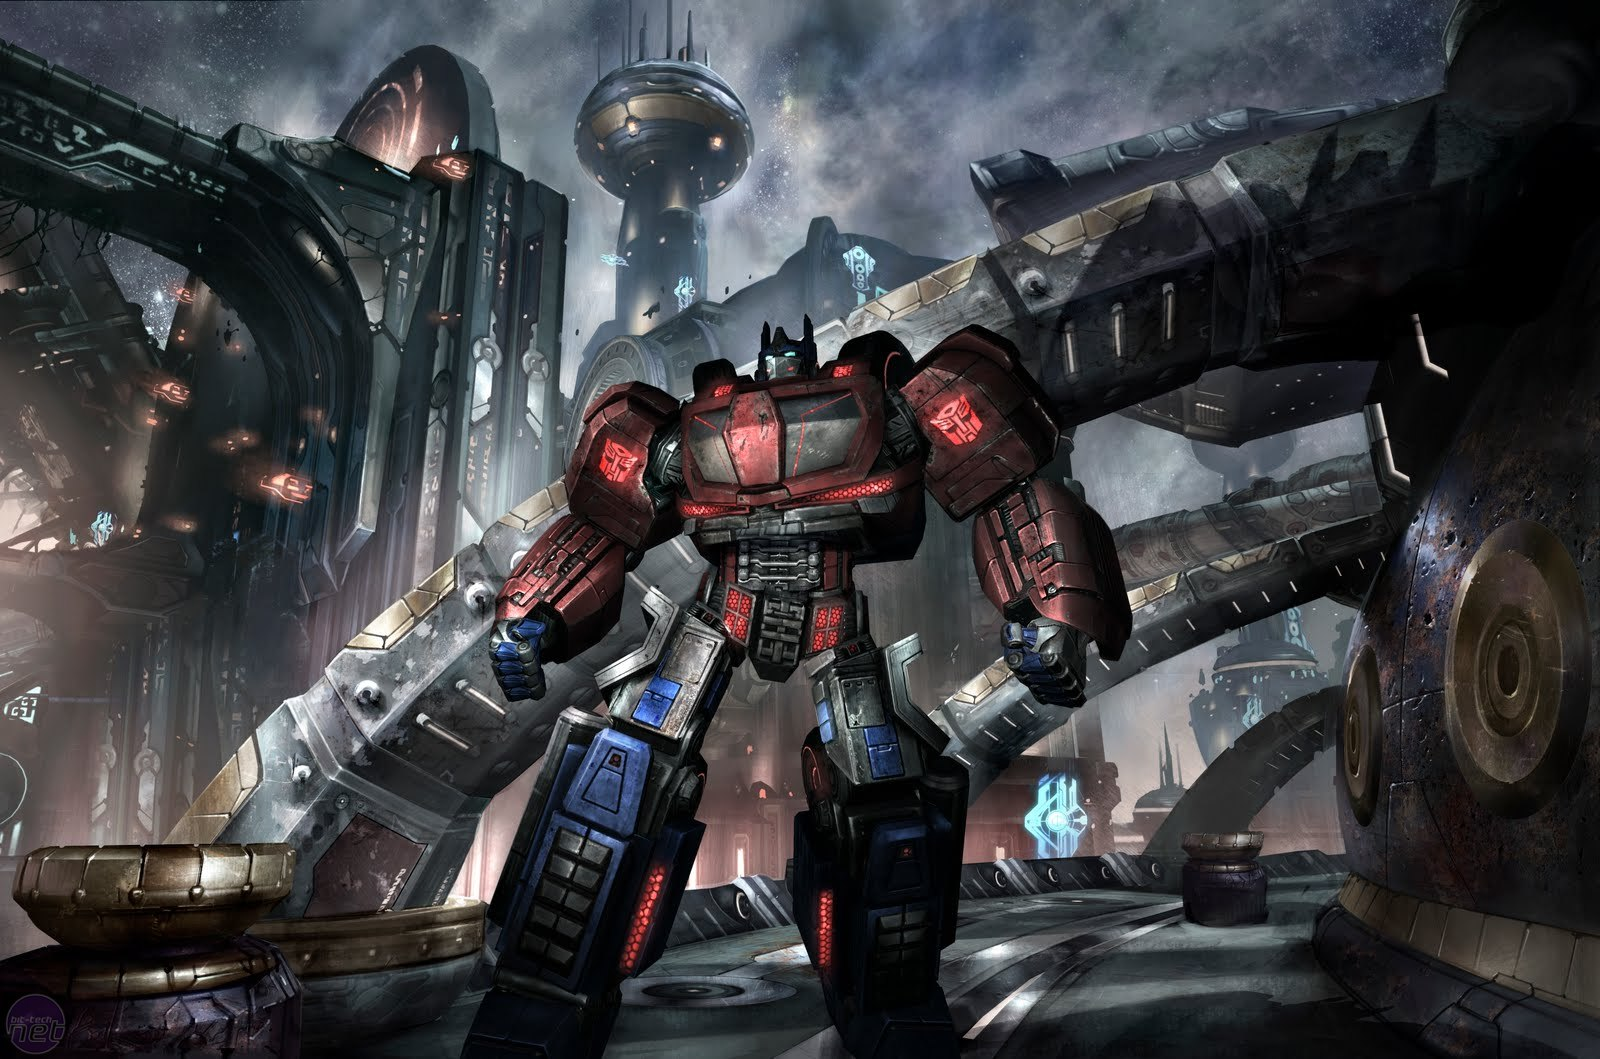 transformers: war for cybertron review | bit-tech